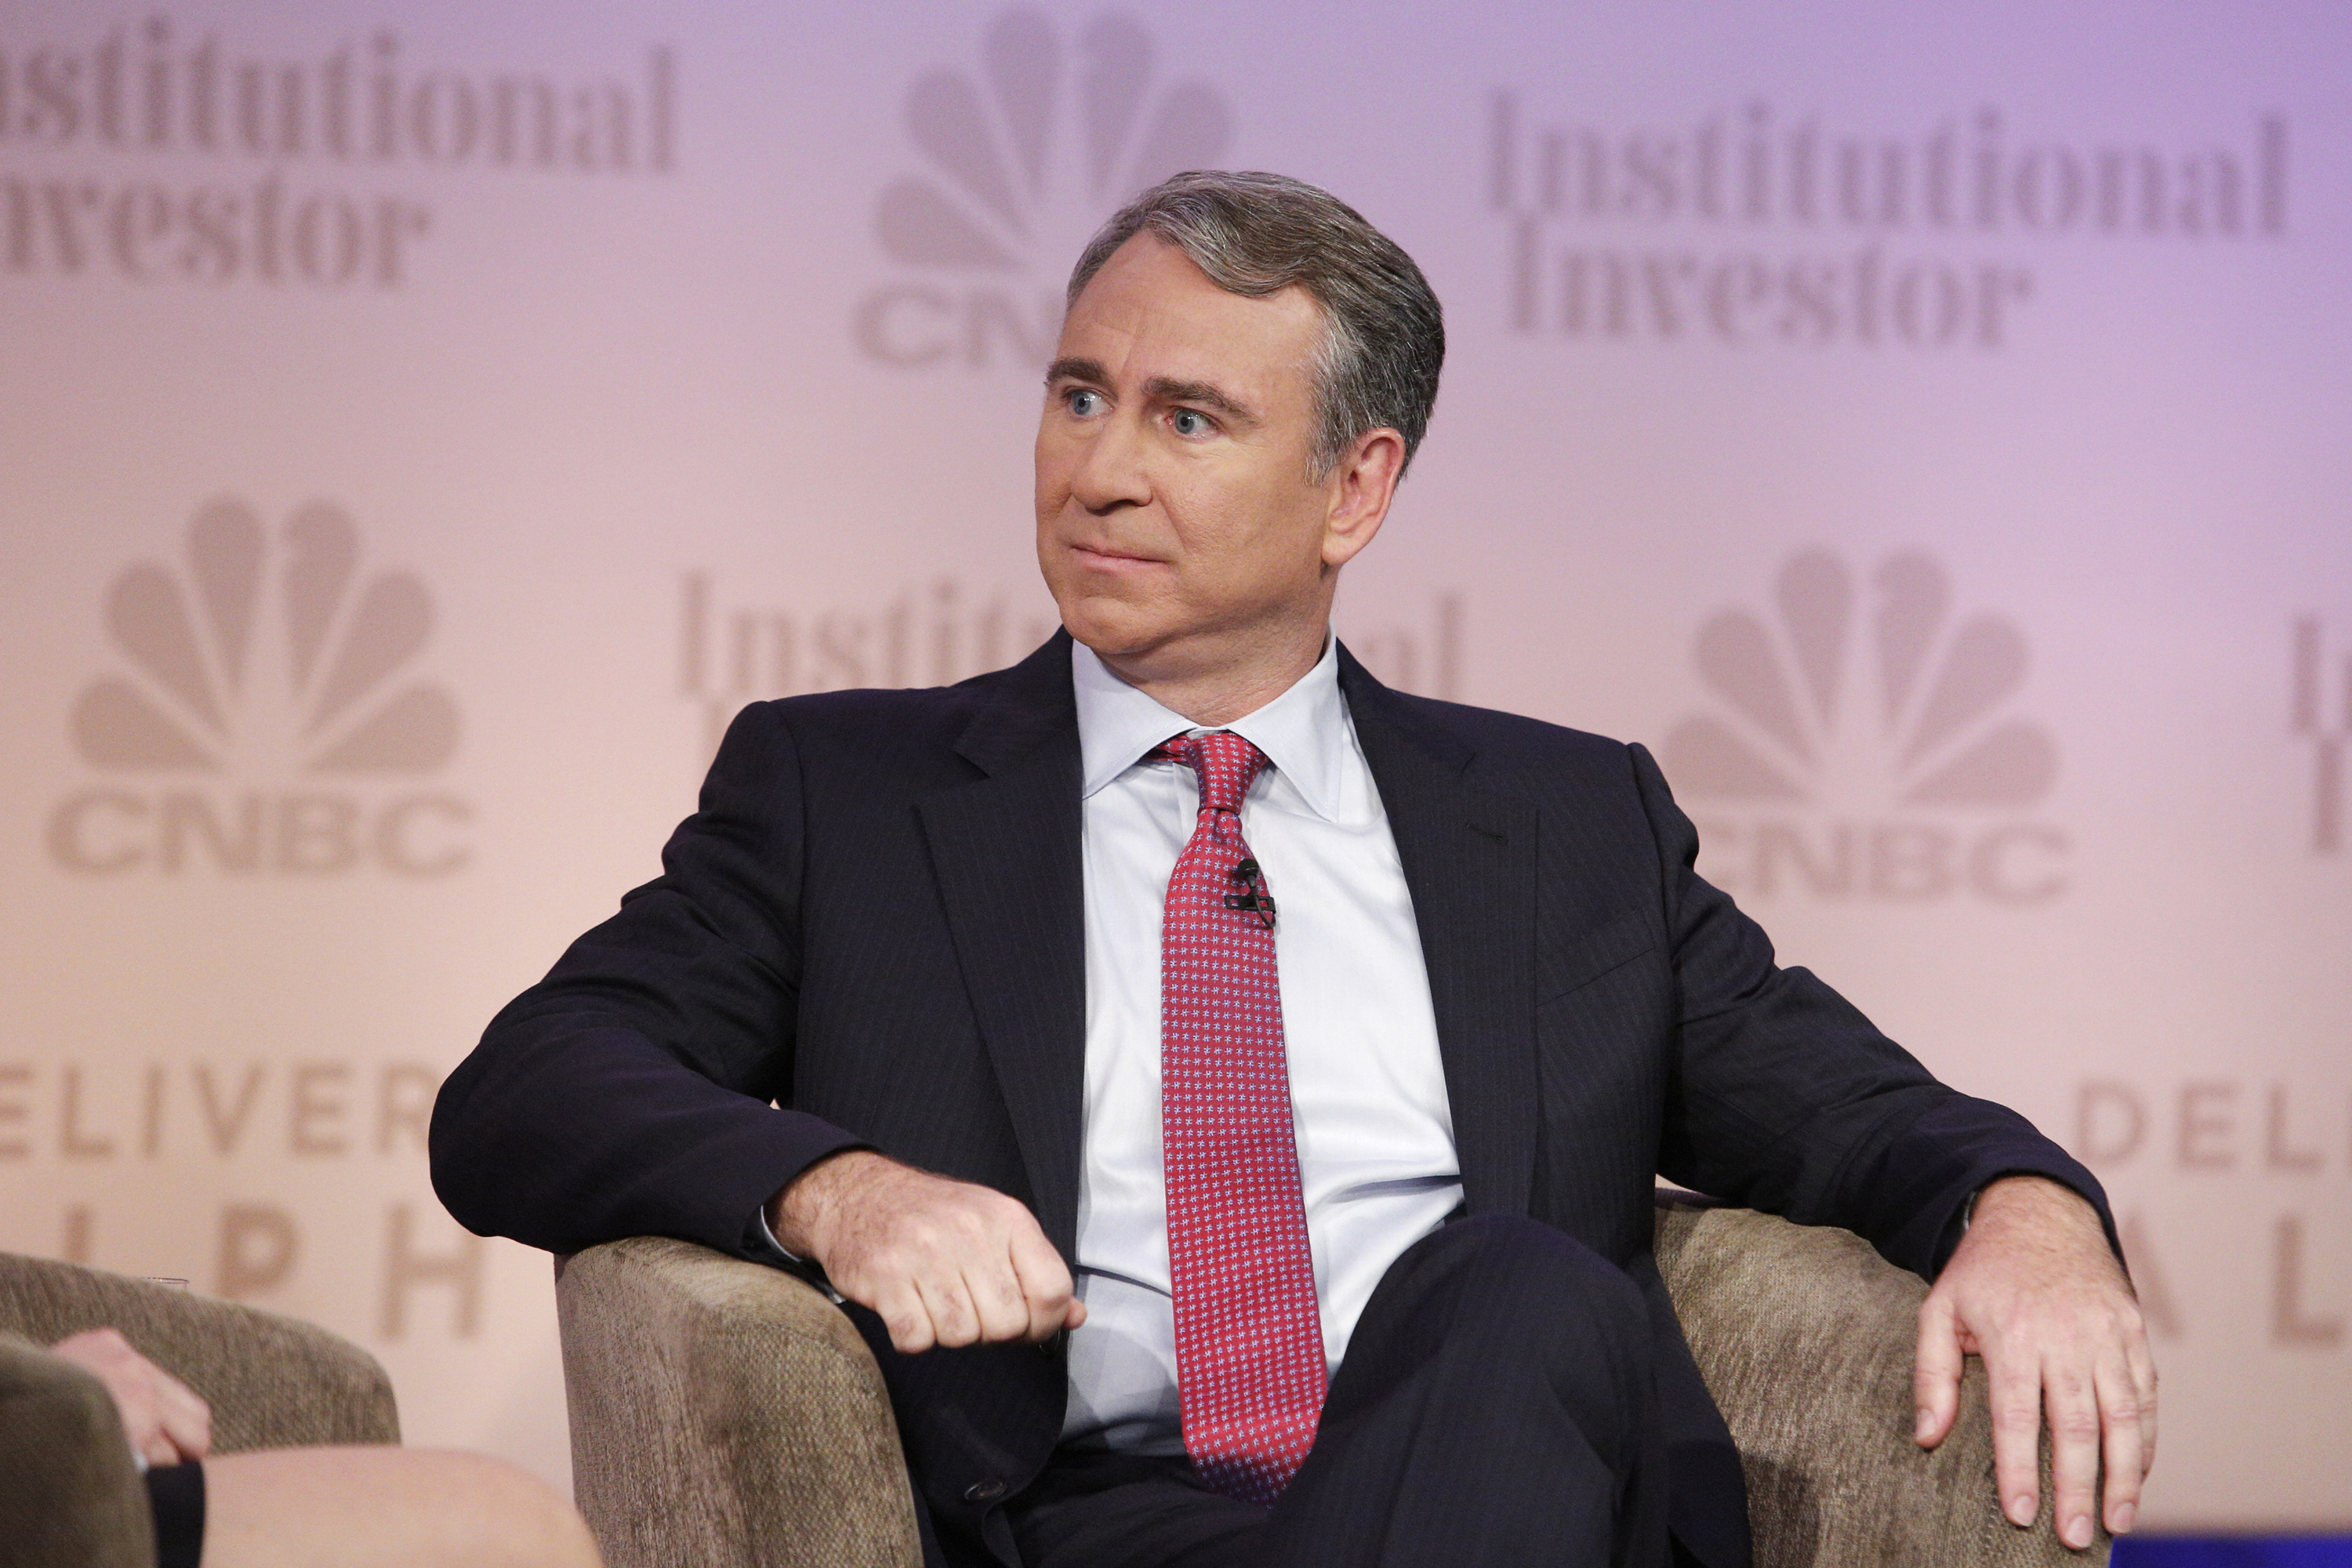 Hedge Fund Managers Made a Whopping $13 Billion Last Year